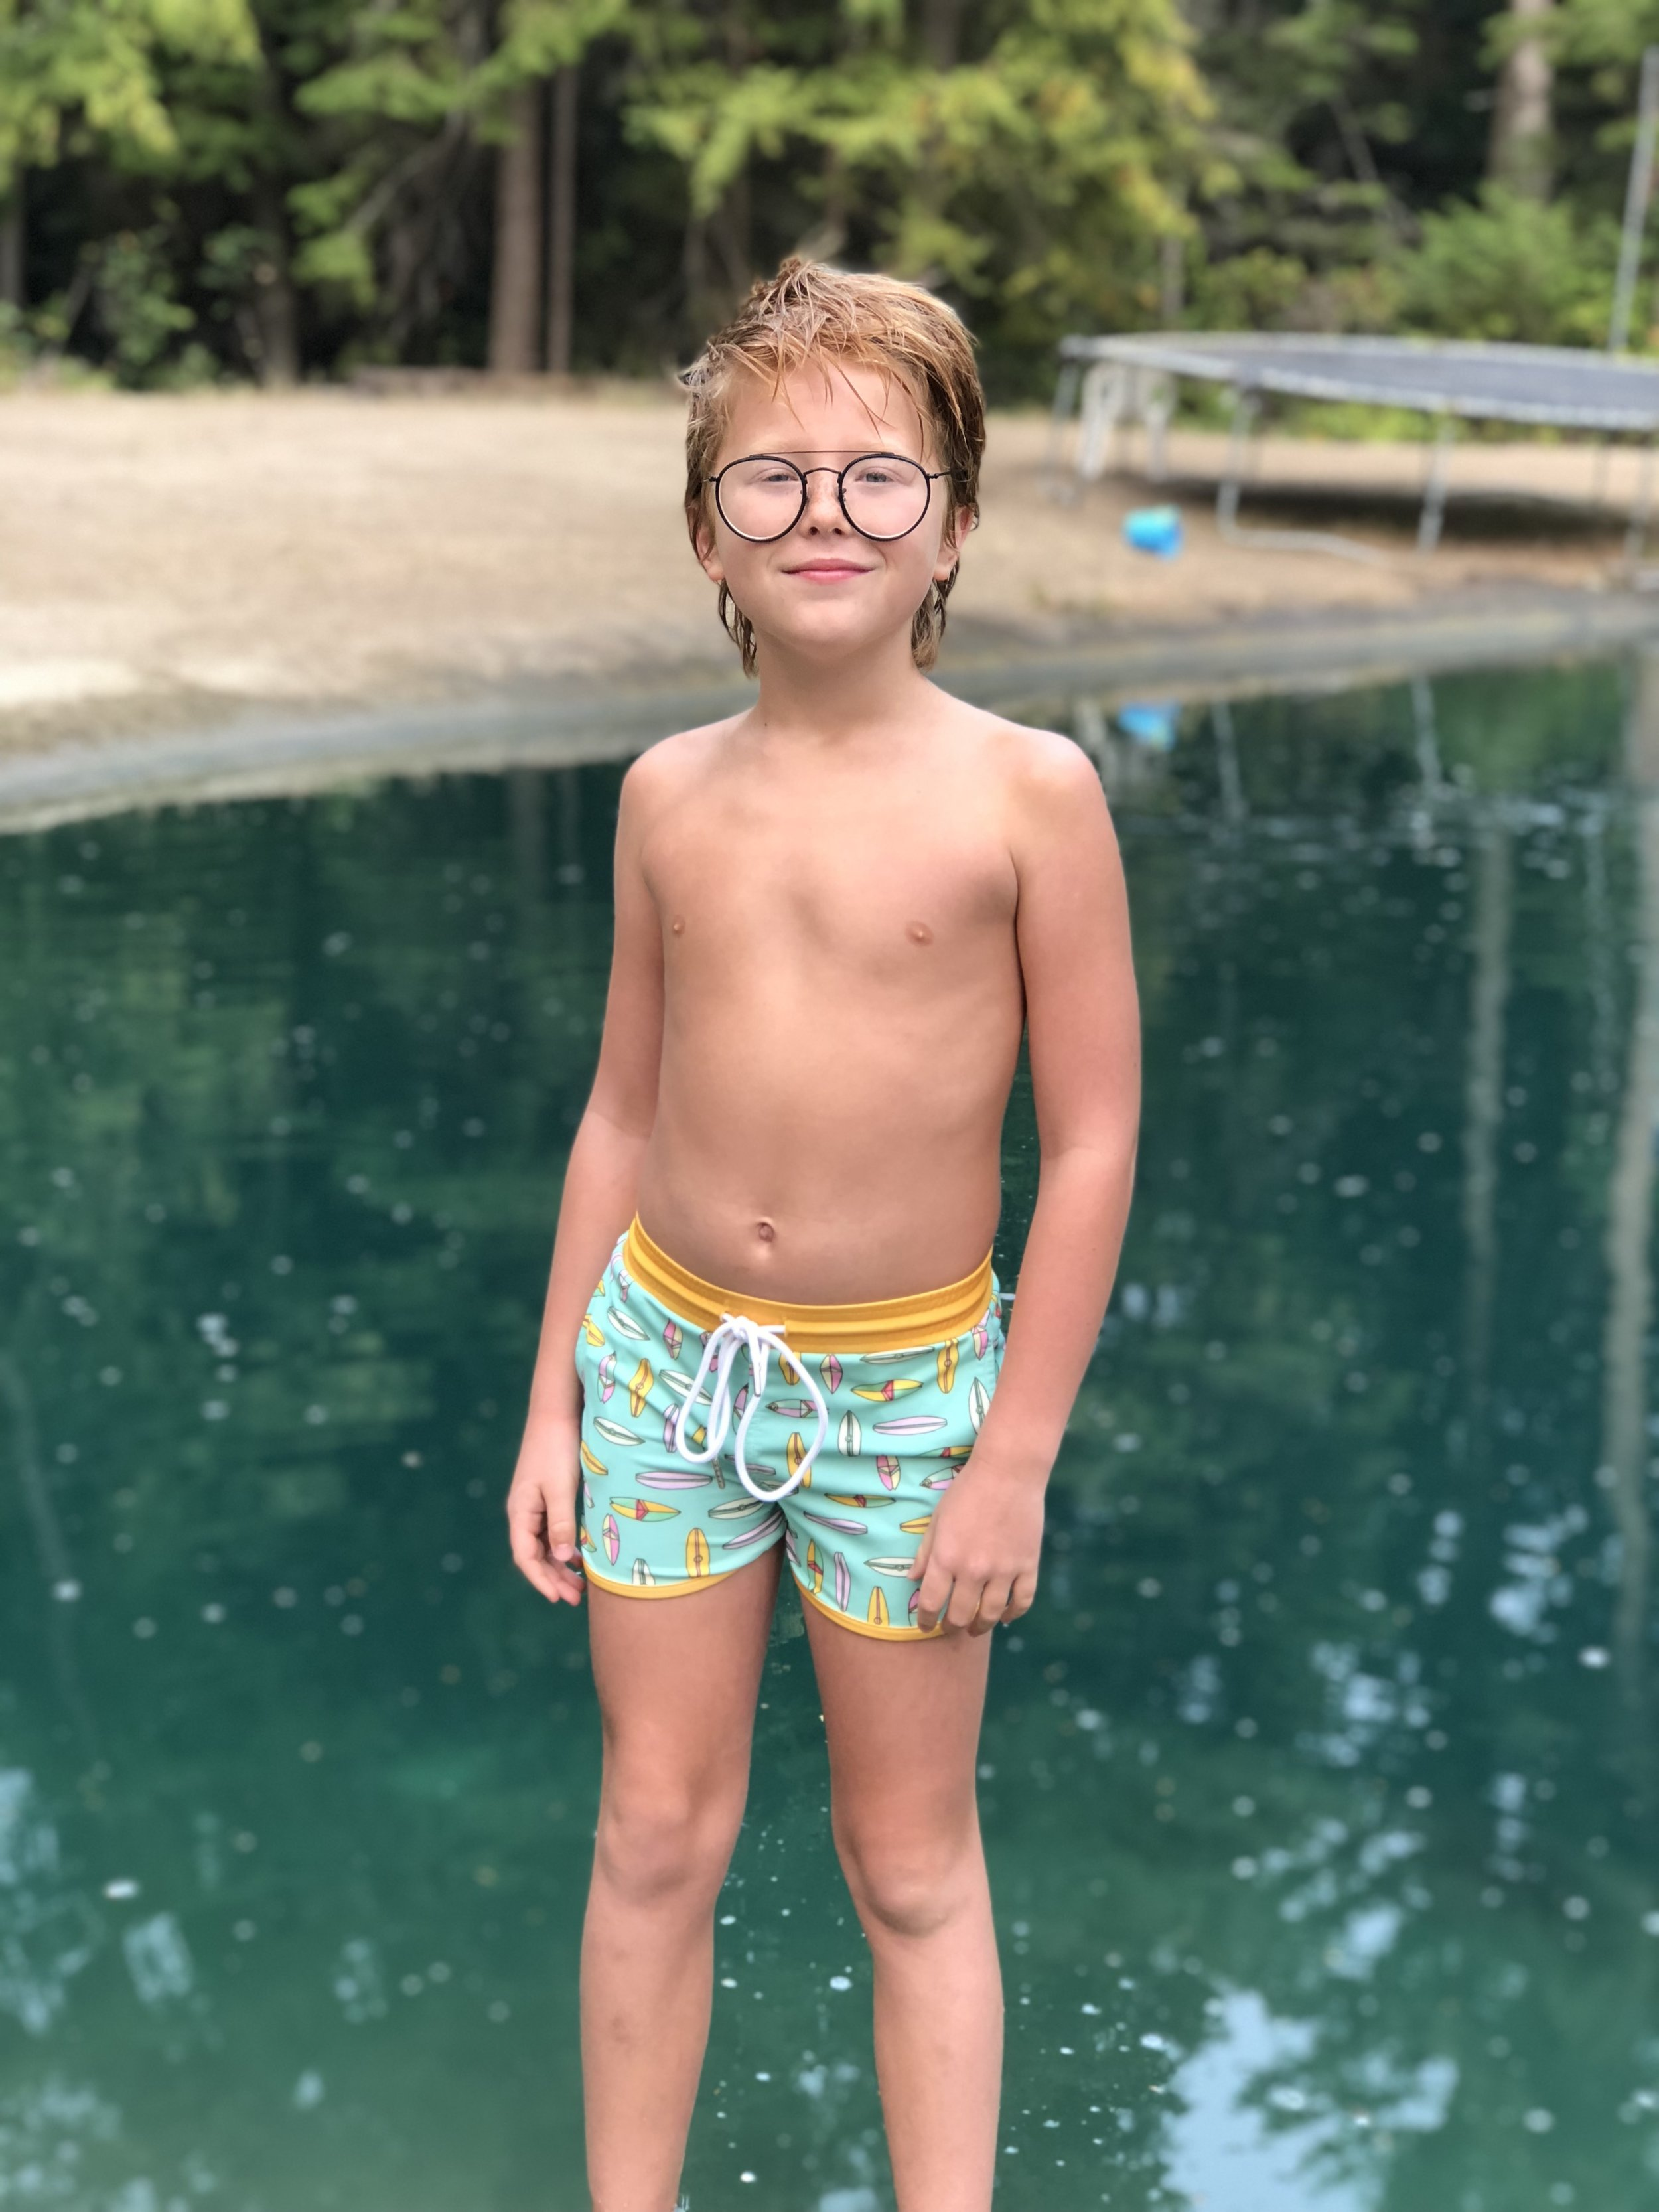 """SARA J. - USA   """"We are thrilled quality and construction of our son's Fisher Euro Board Short. He hates huge trunks and too often smaller cuts are made with flimsy fabric that wears out almost instantly. These suits are wonderful and long lasting, (which make great hand-me-downs.) Can't wait for the next line soon!"""""""